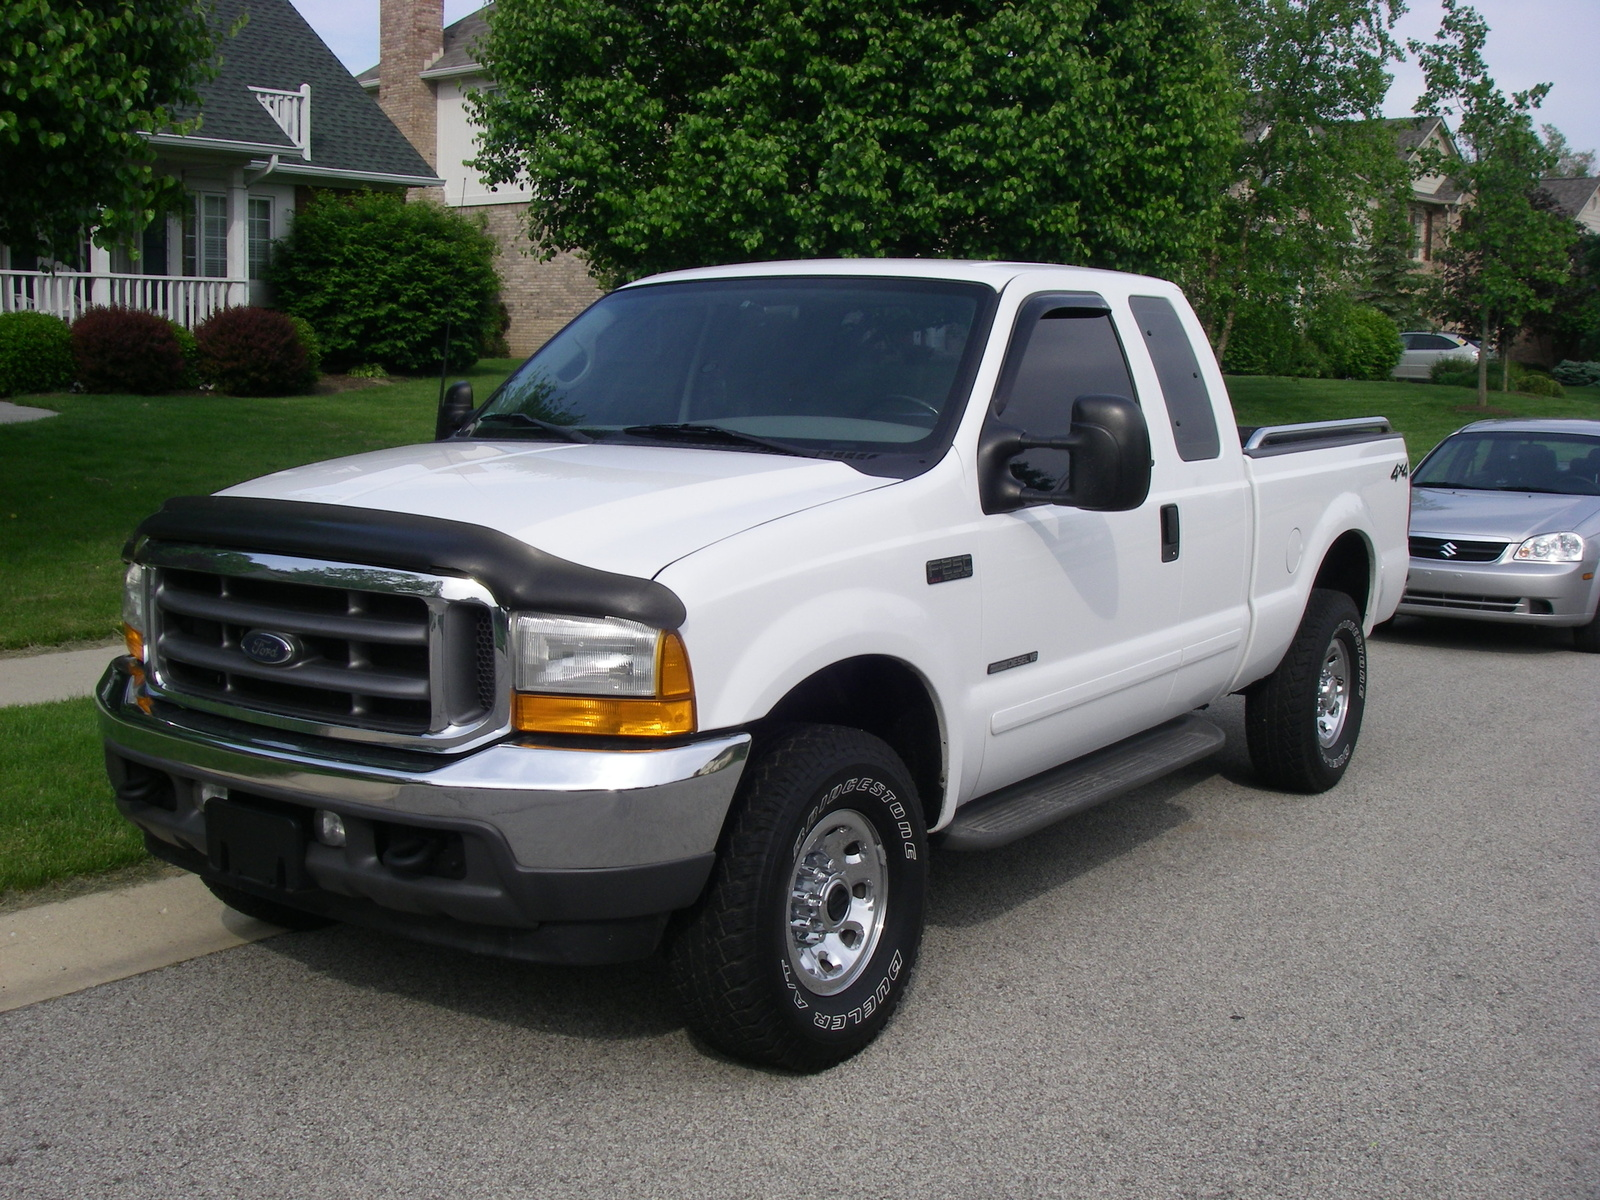 Ford 250 2001 Photo - 1